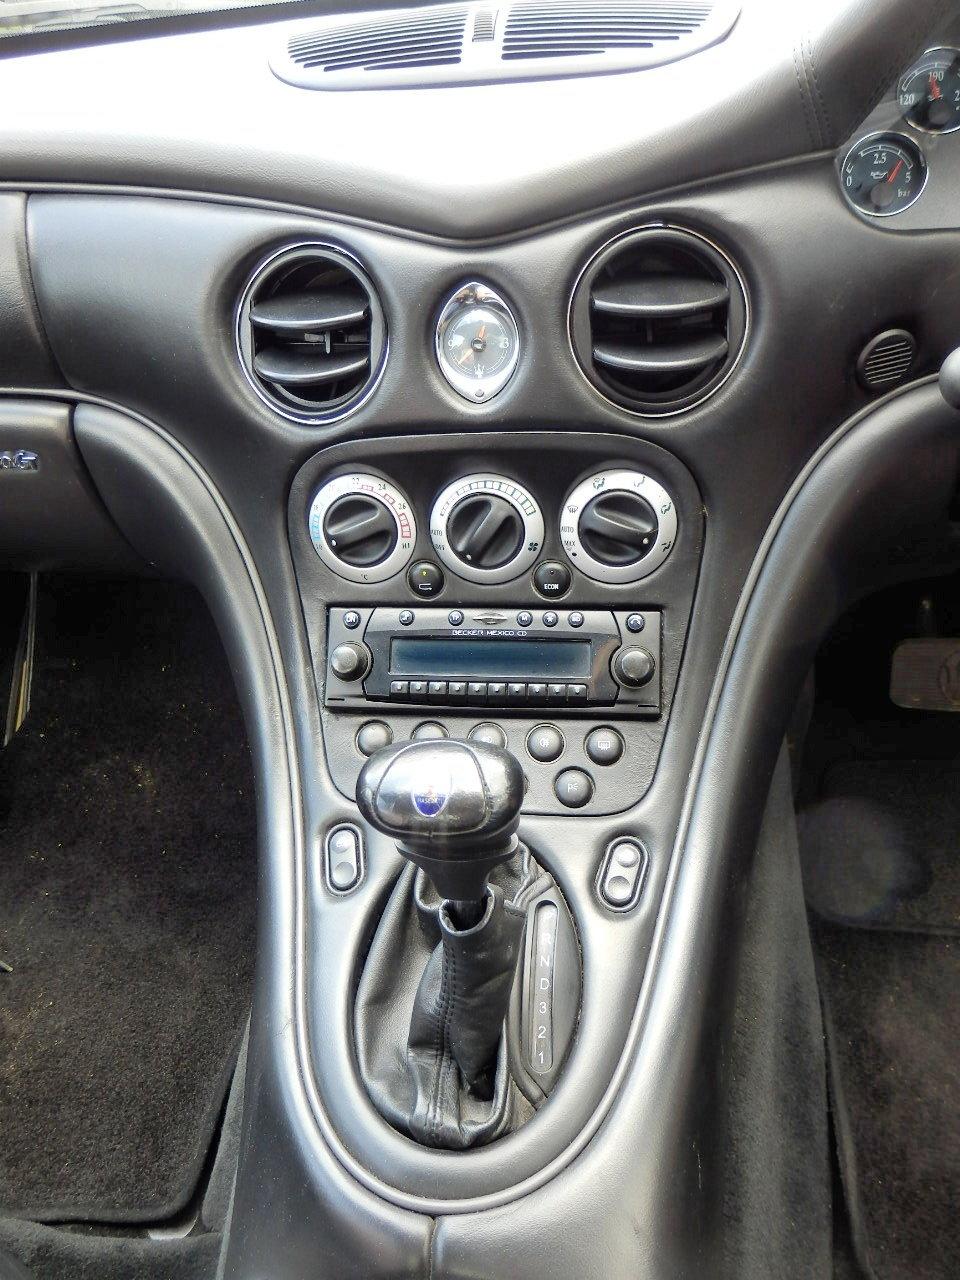 1999 Maserati 3200 GT V8 370bhp For Sale (picture 4 of 6)